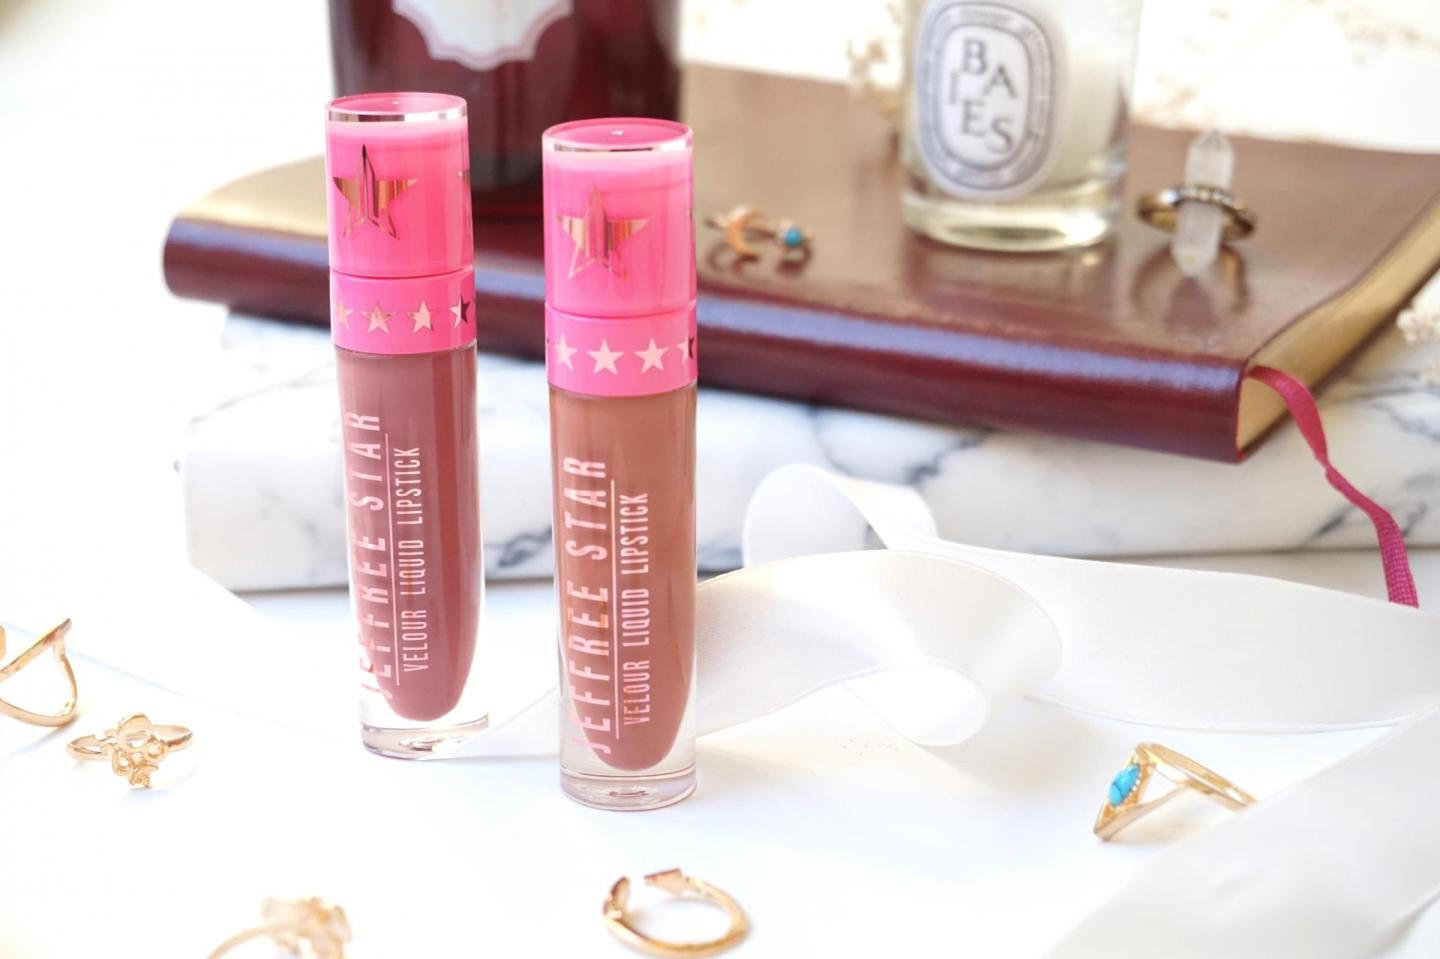 Jeffree Star: Velour Liquid Lipstick in Androgyny and Leo